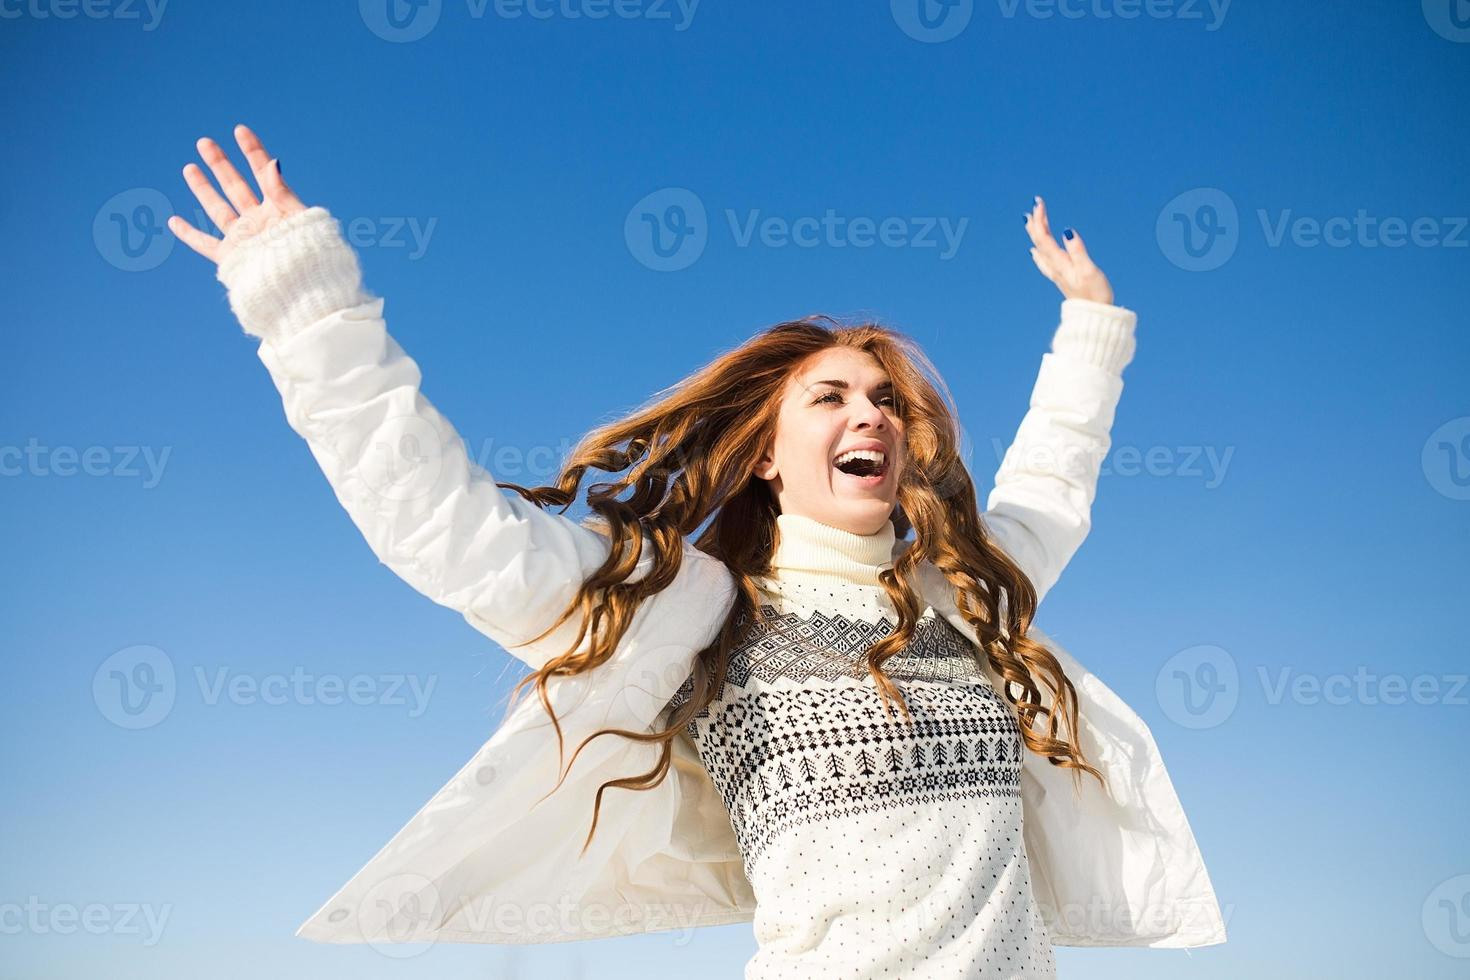 Happy young woman have fun and enjoy fresh snow photo